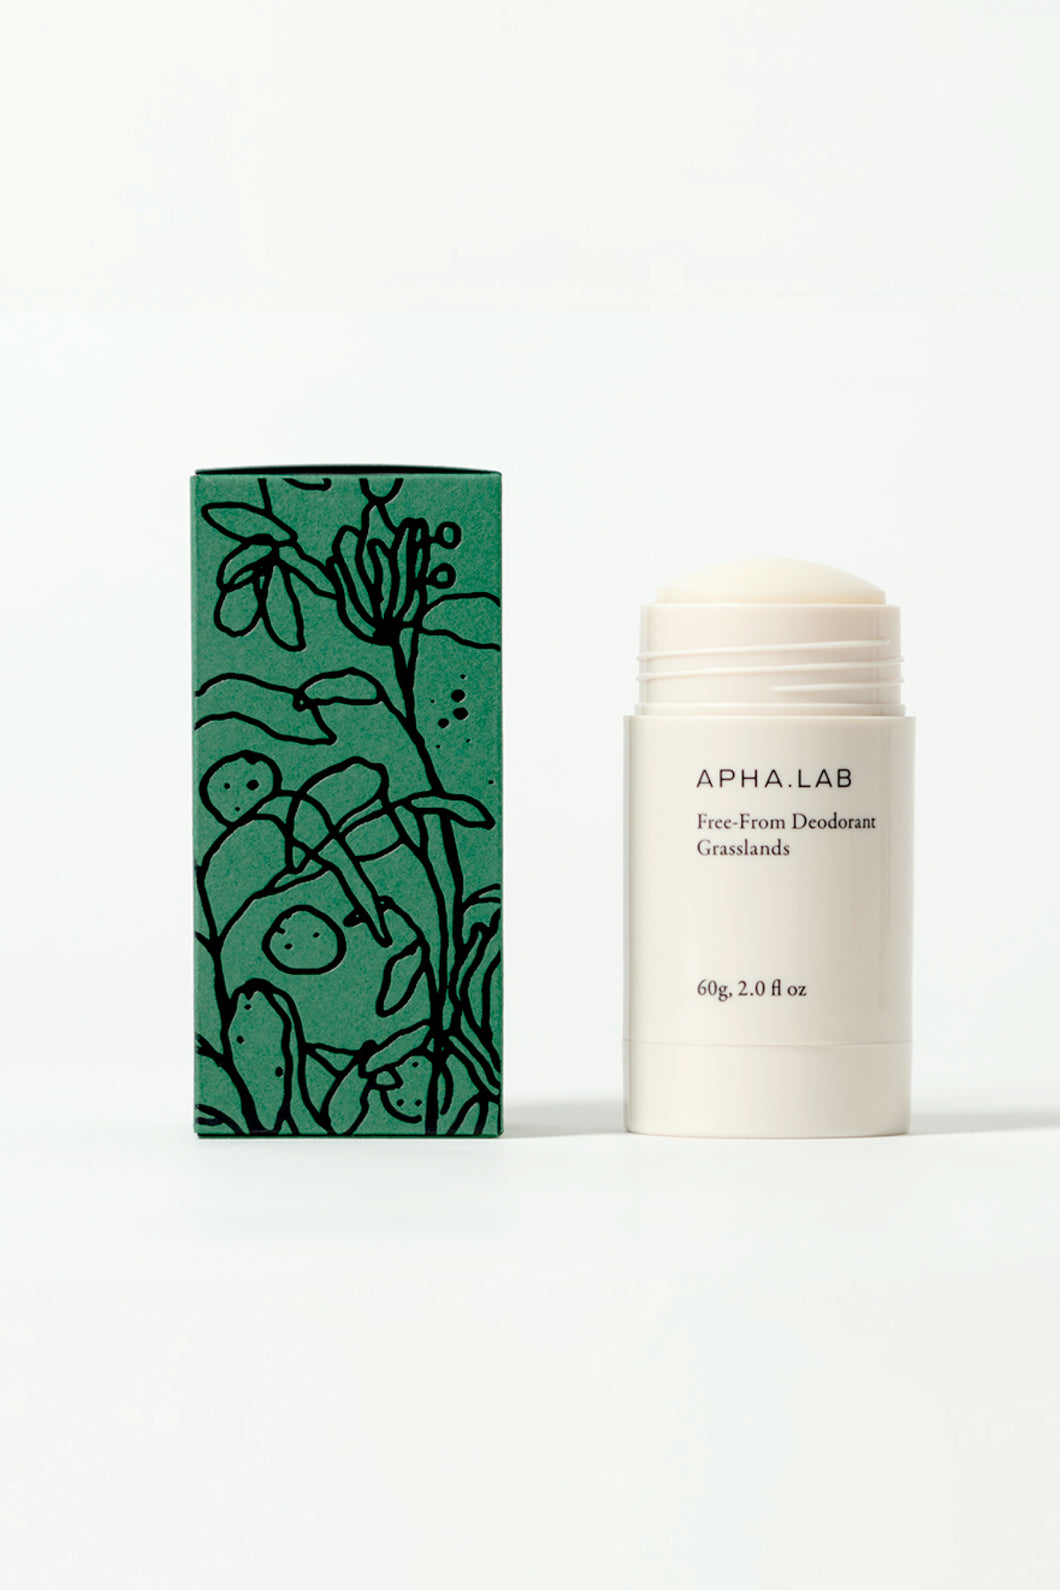 APHA.LAB Grasslands Free-From Deodorant